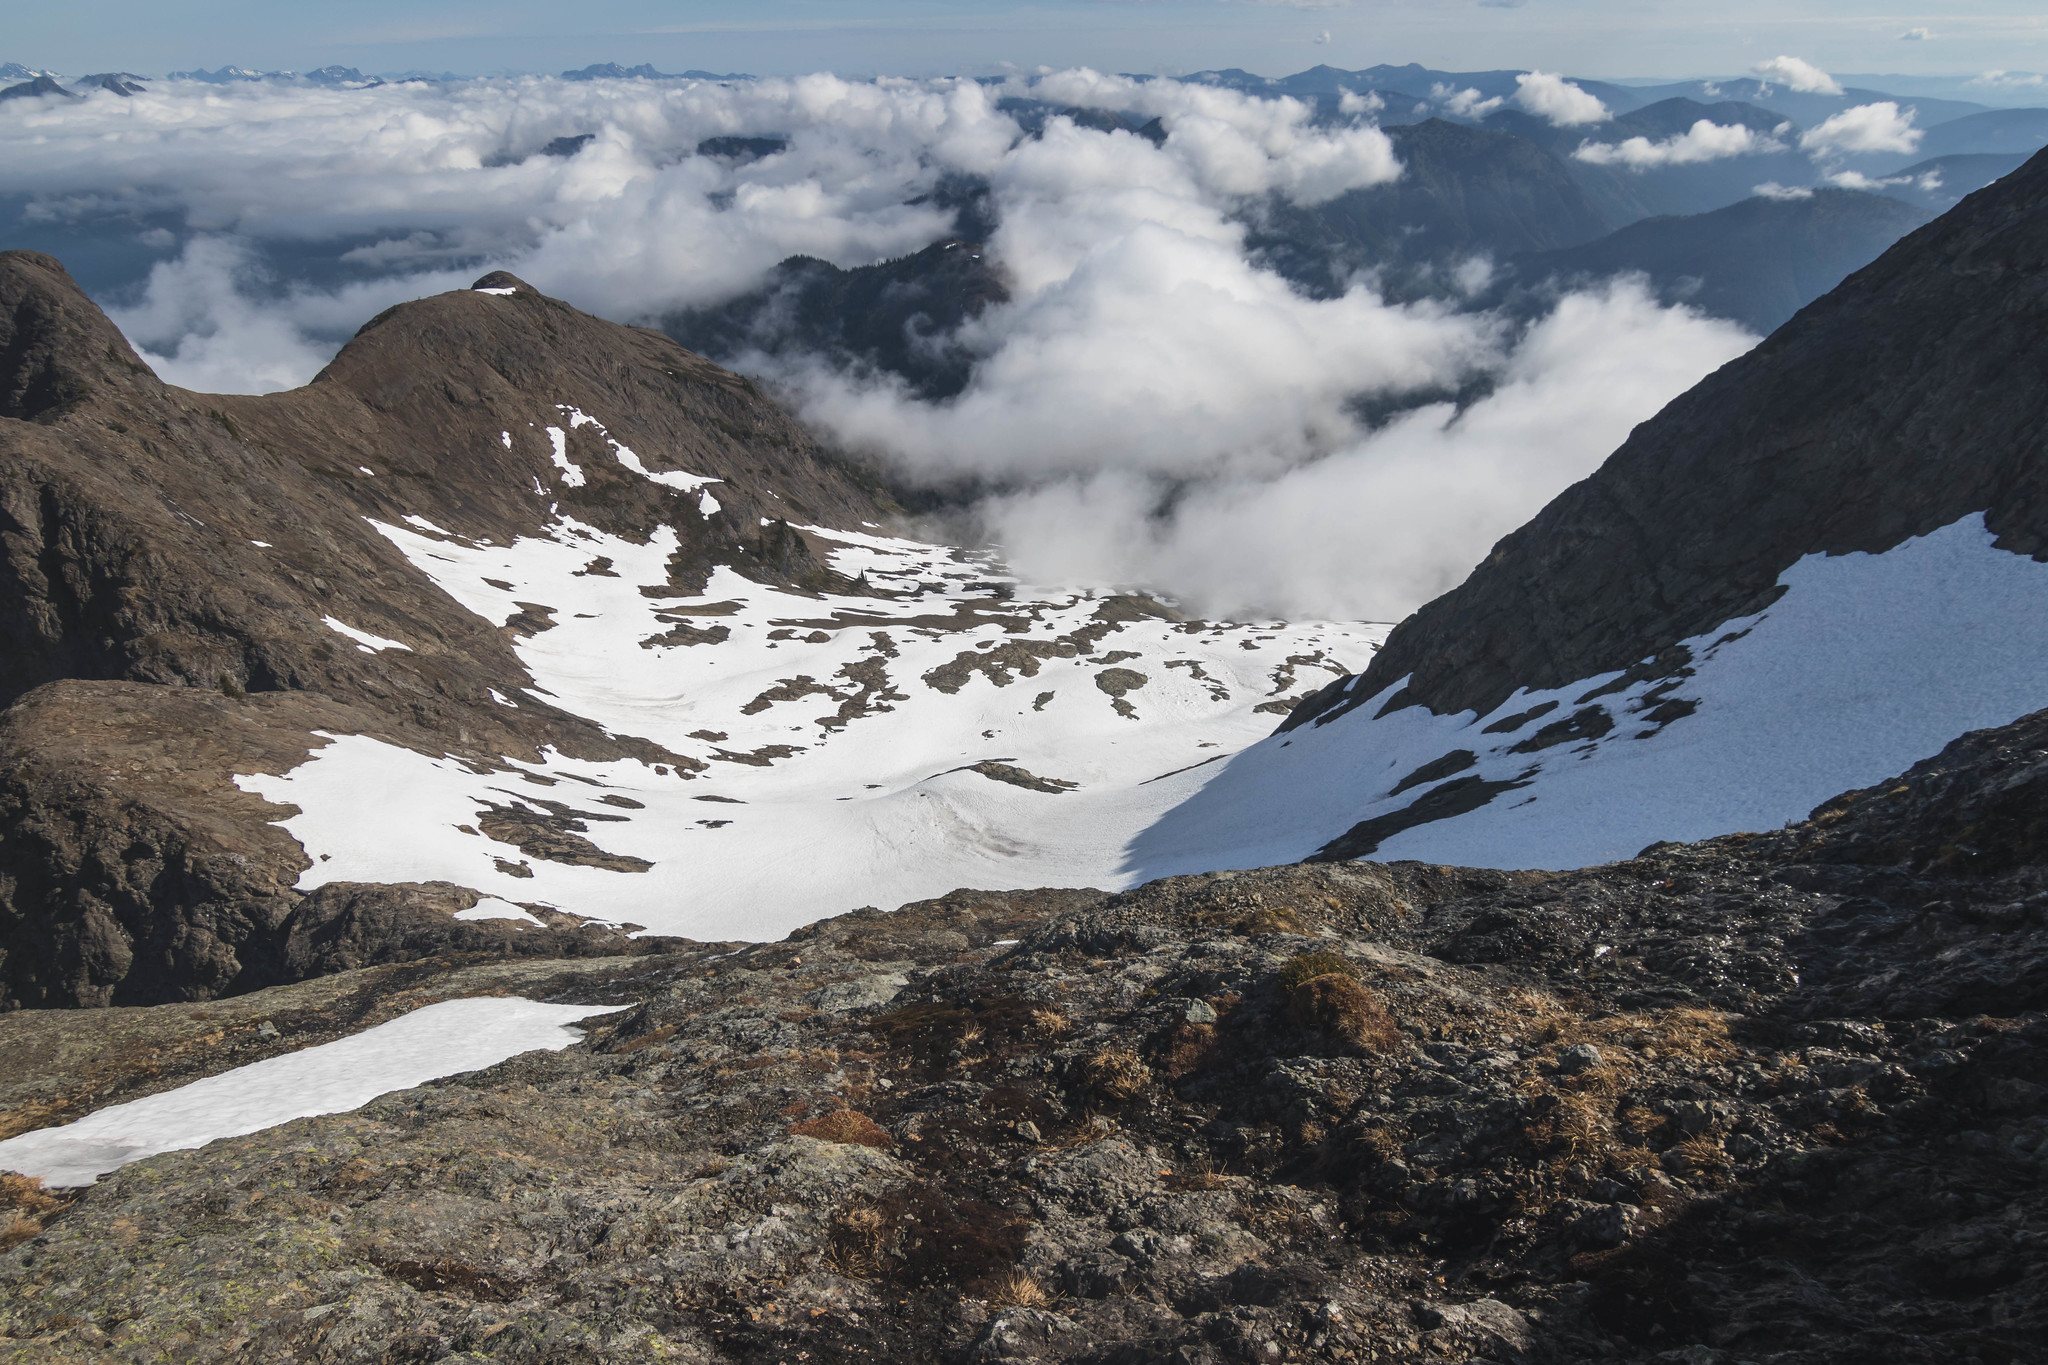 Top of the lower snowfield